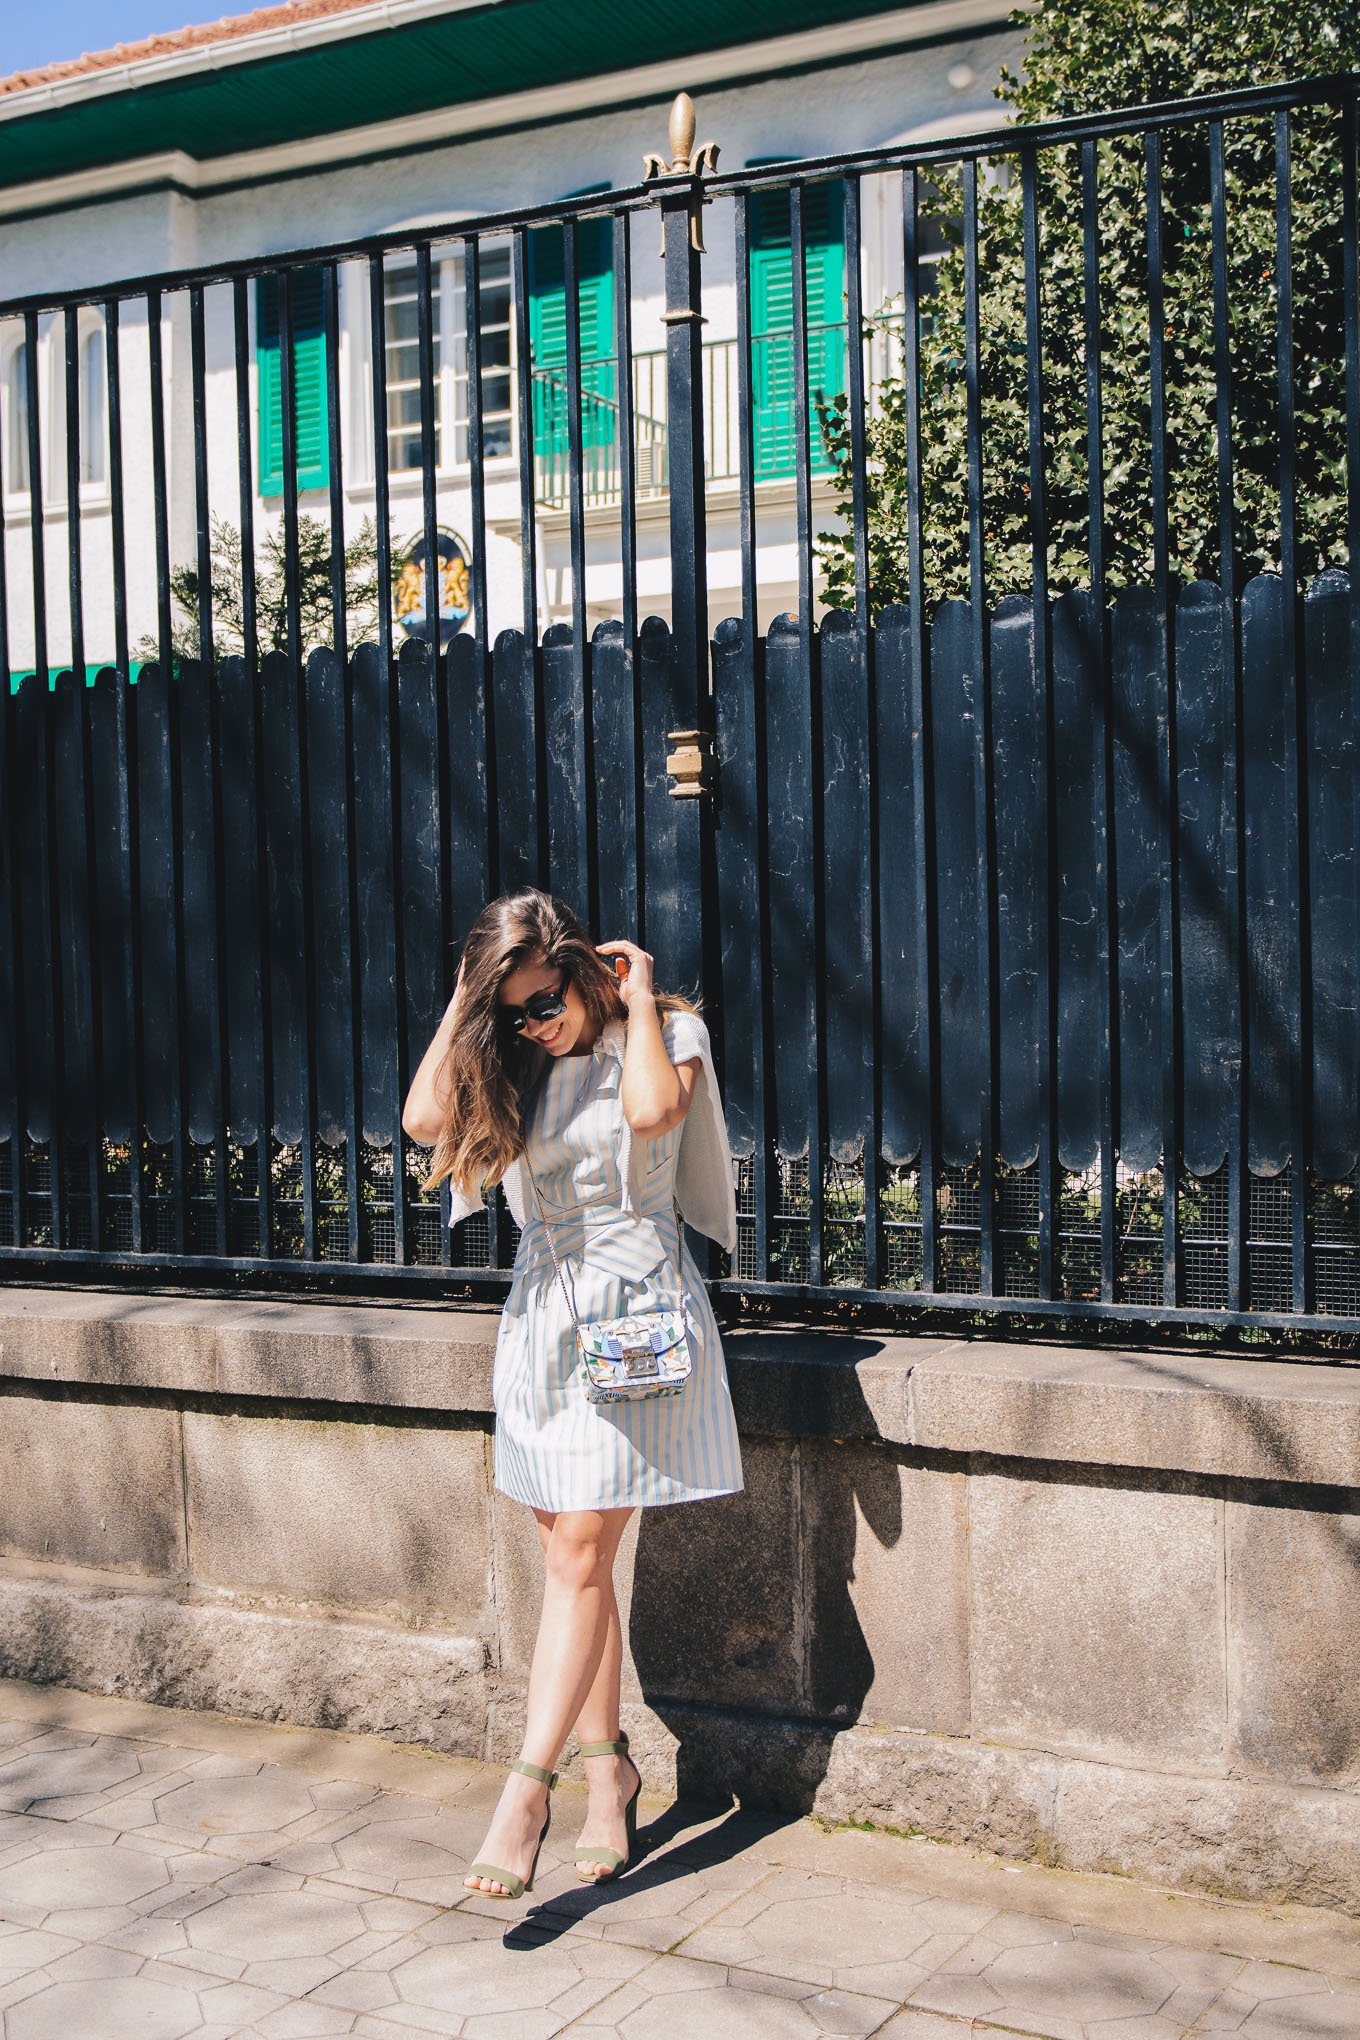 Bulgaria blogger wearing striped dress